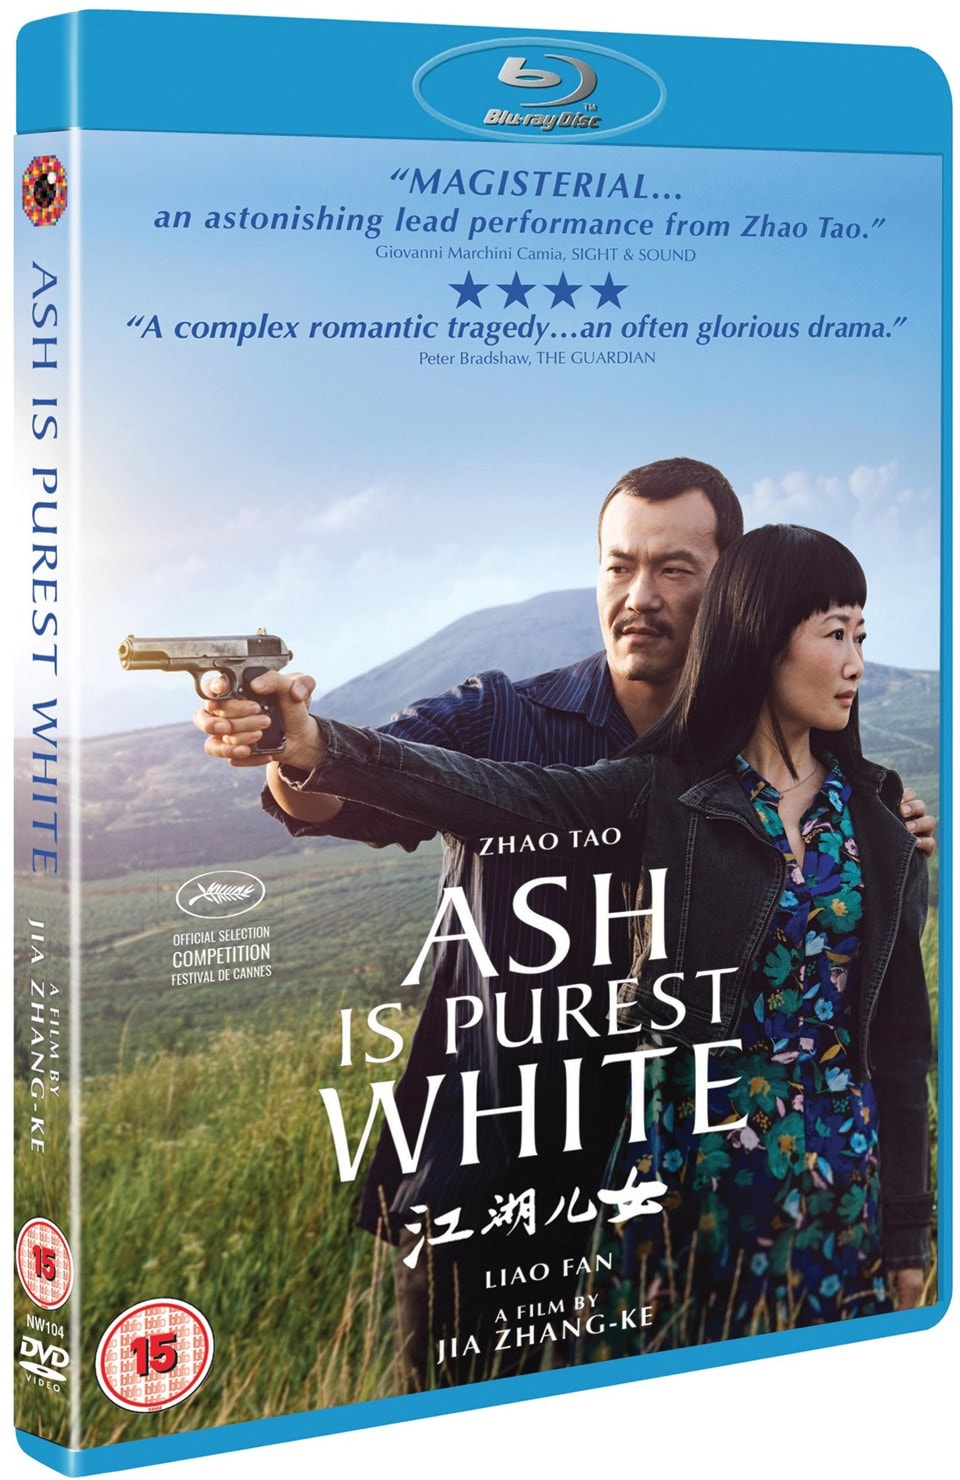 Ash Is Purest White - 2